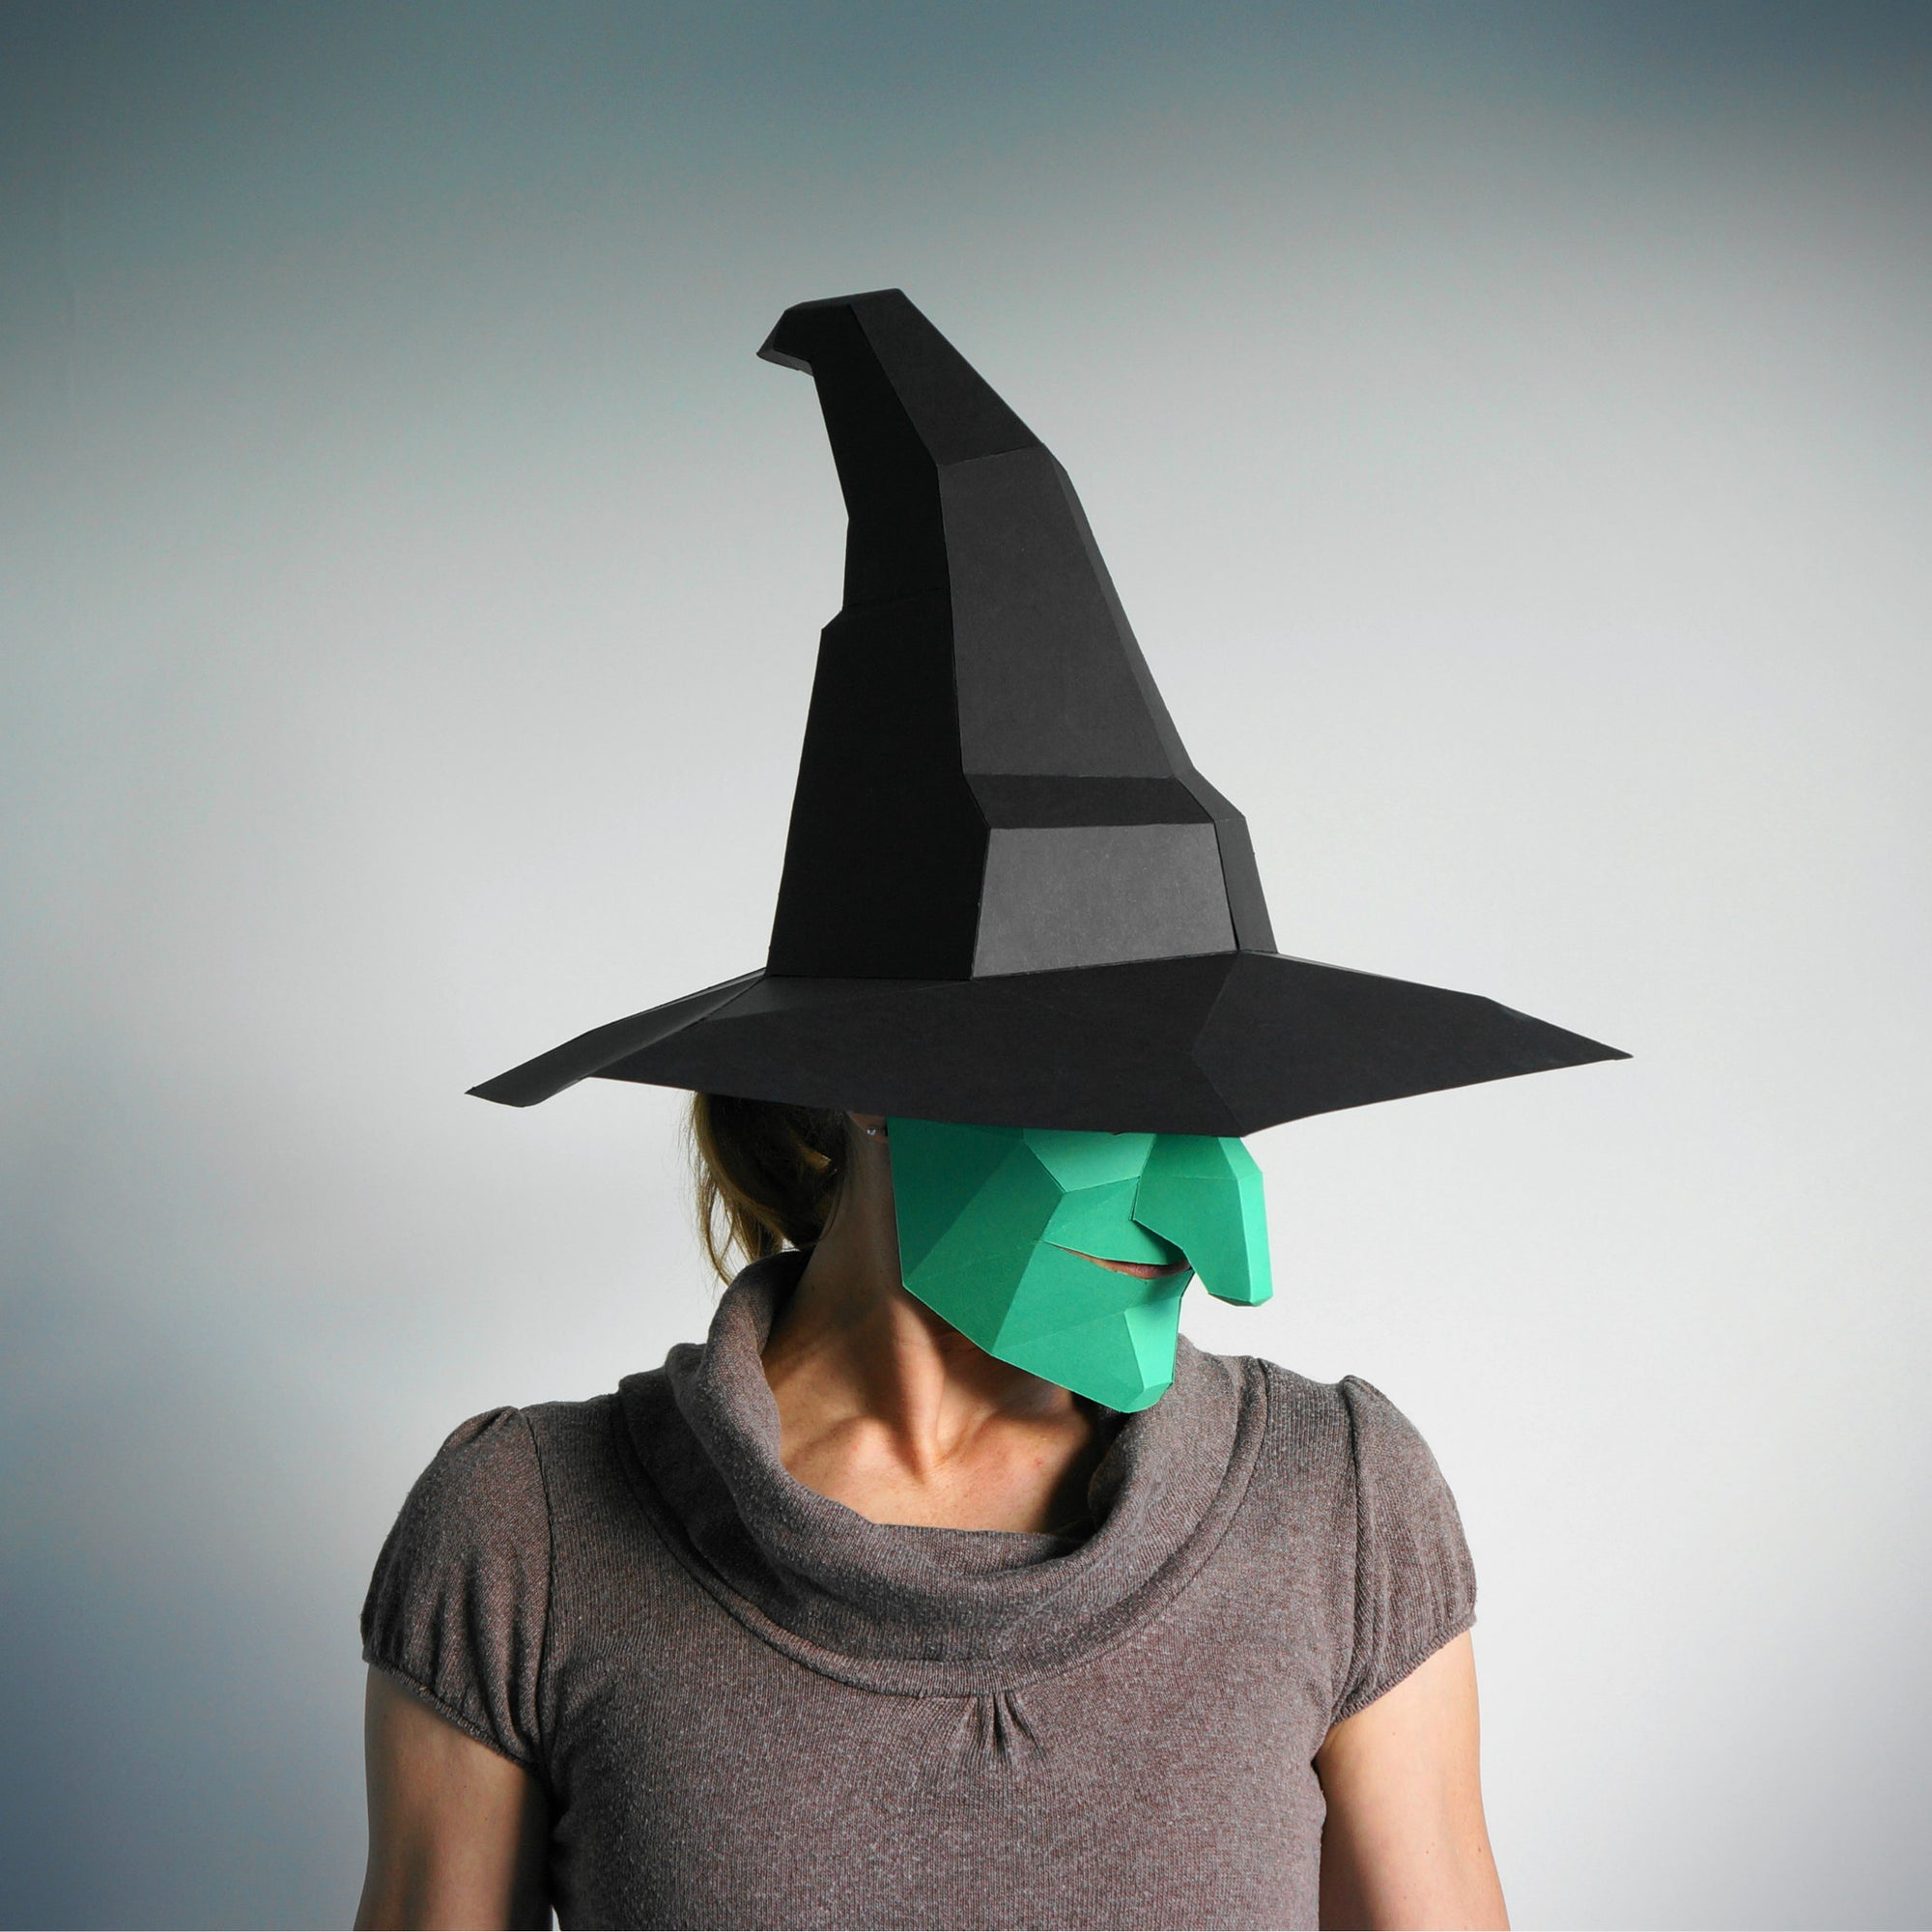 Magic Hat - For witches wizards and those of a magical disposition - Wintercroft - & Magic Hat - For witches wizards and those of a magical disposition ...